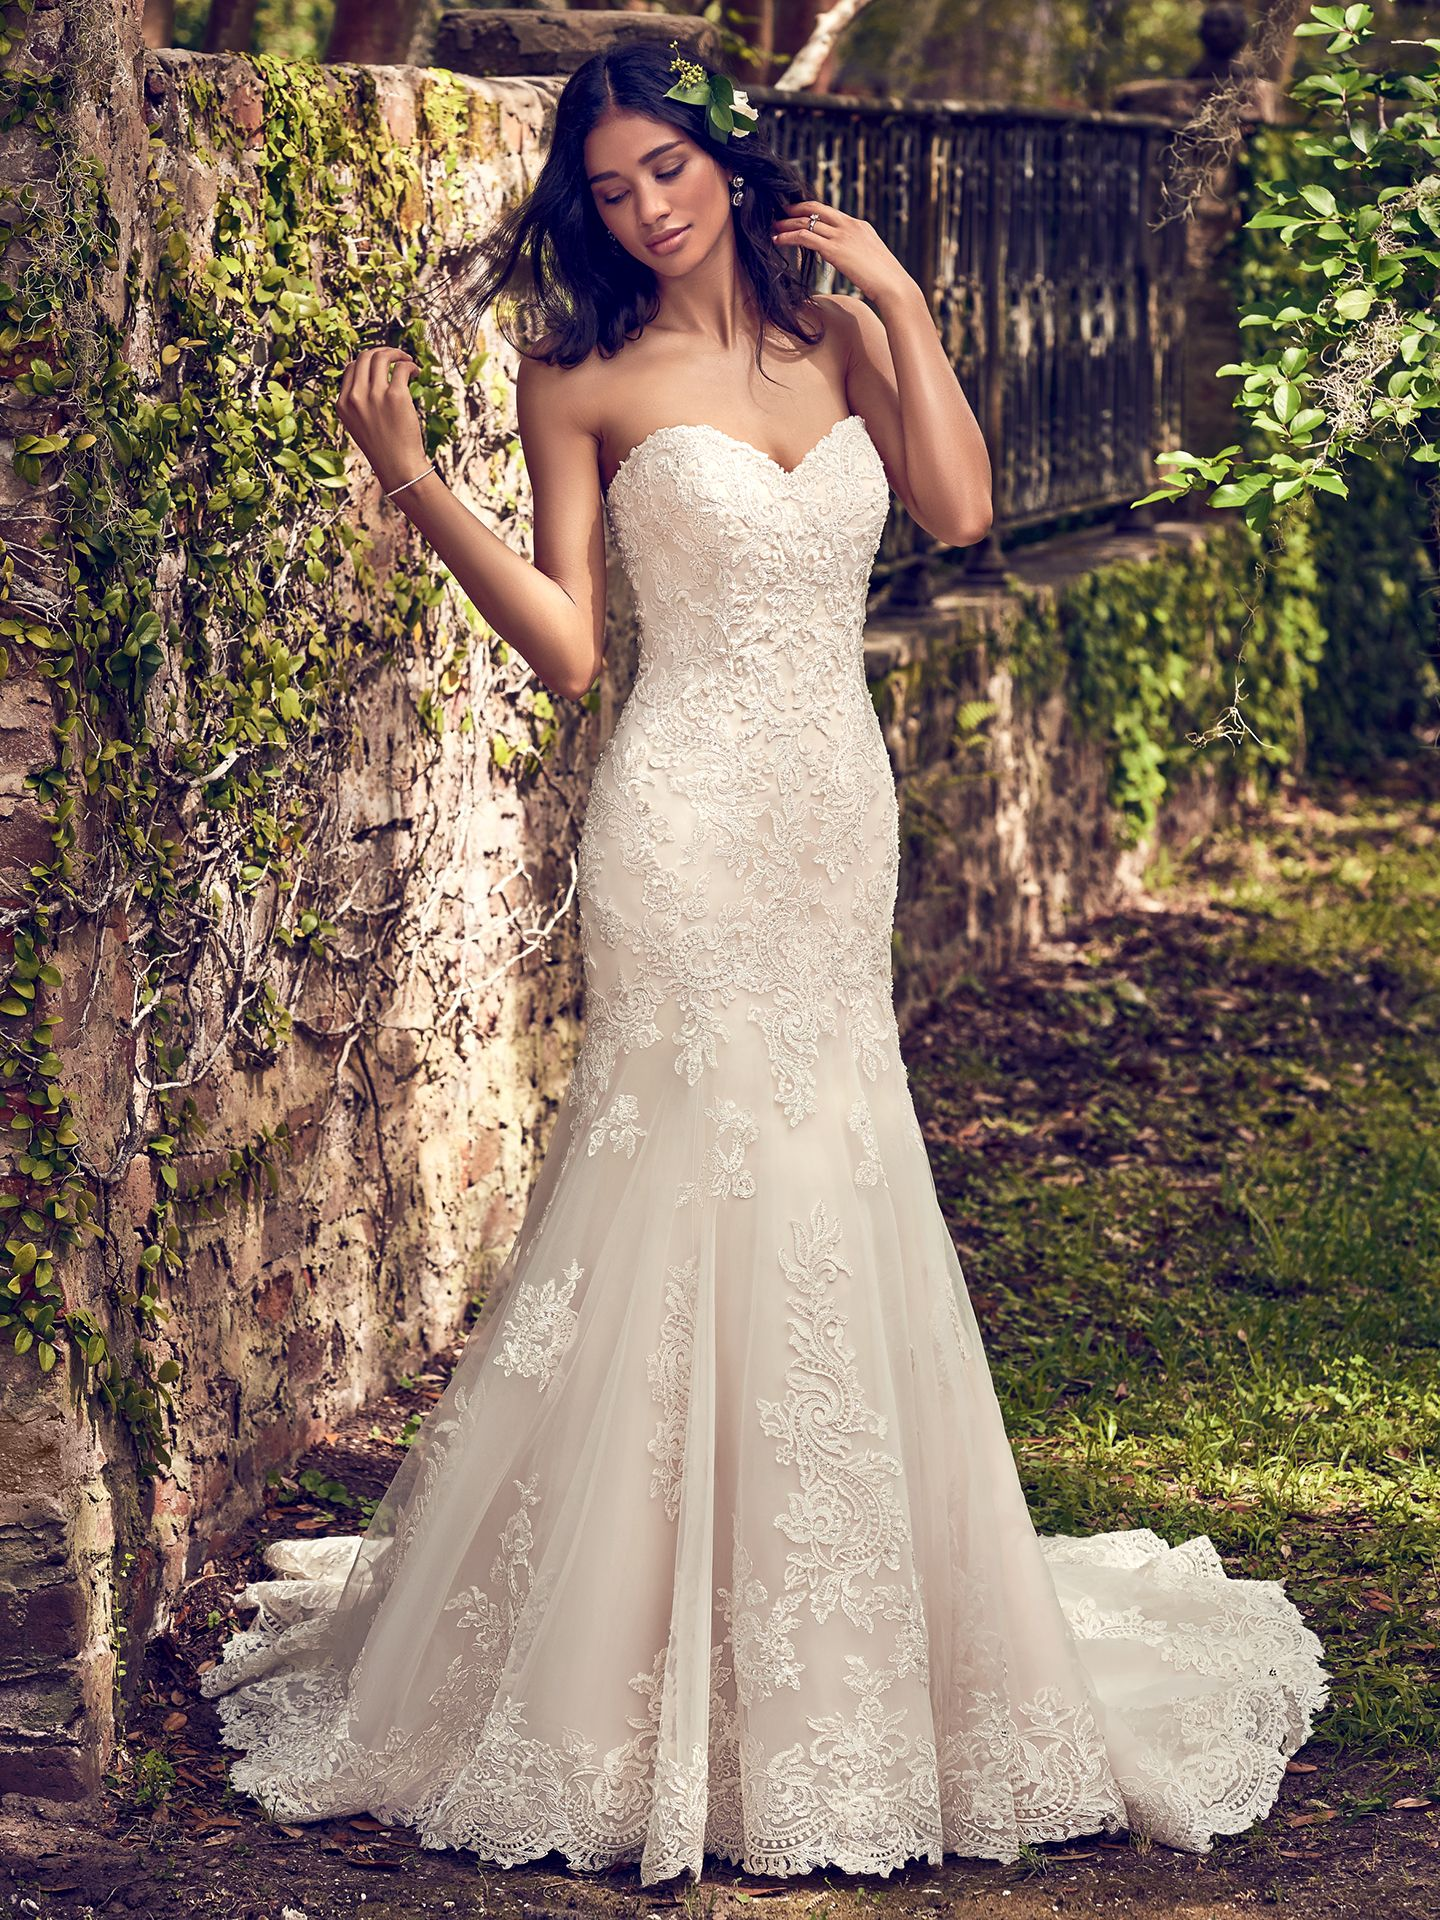 6 Best Wedding Dresses For A Rustic Siage Dress By Maggie Sottero